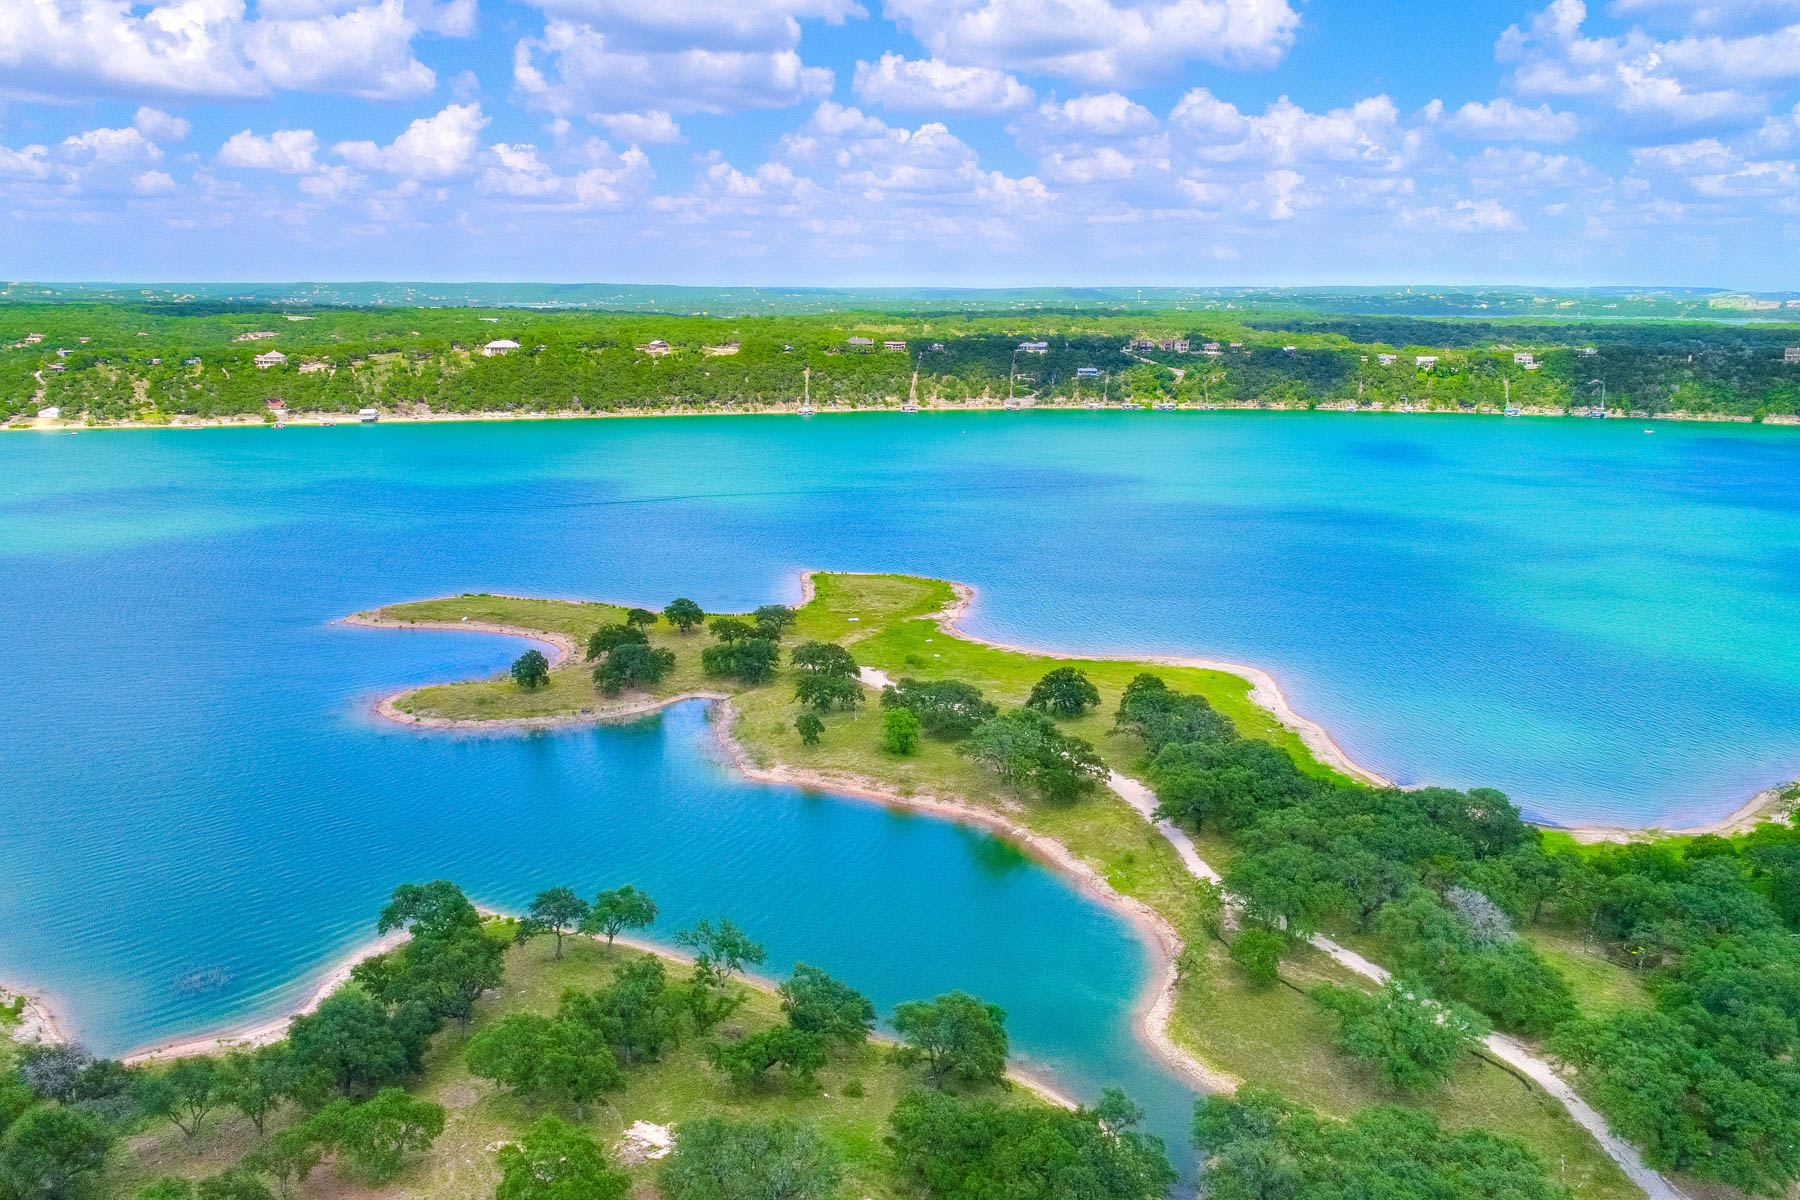 Terreno por un Venta en The Reserve on Lake Travis: 18 Waterfront Acres 2200/08 Cypress Club Pointe Spicewood, Texas 78669 Estados Unidos